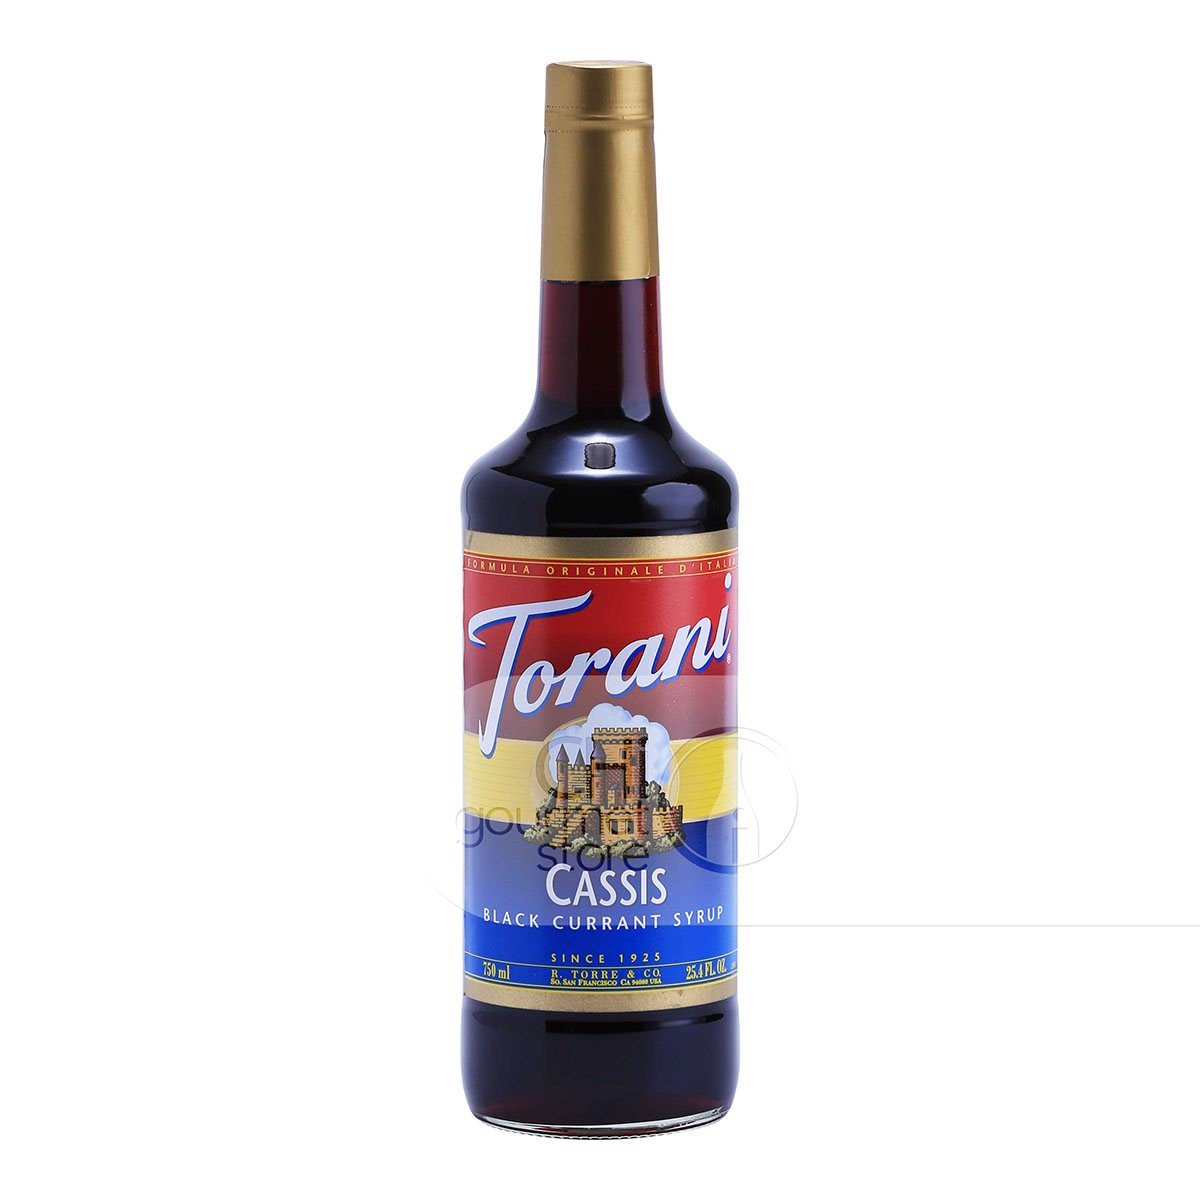 Syrup Cassic Black Currant 750ml - Torani